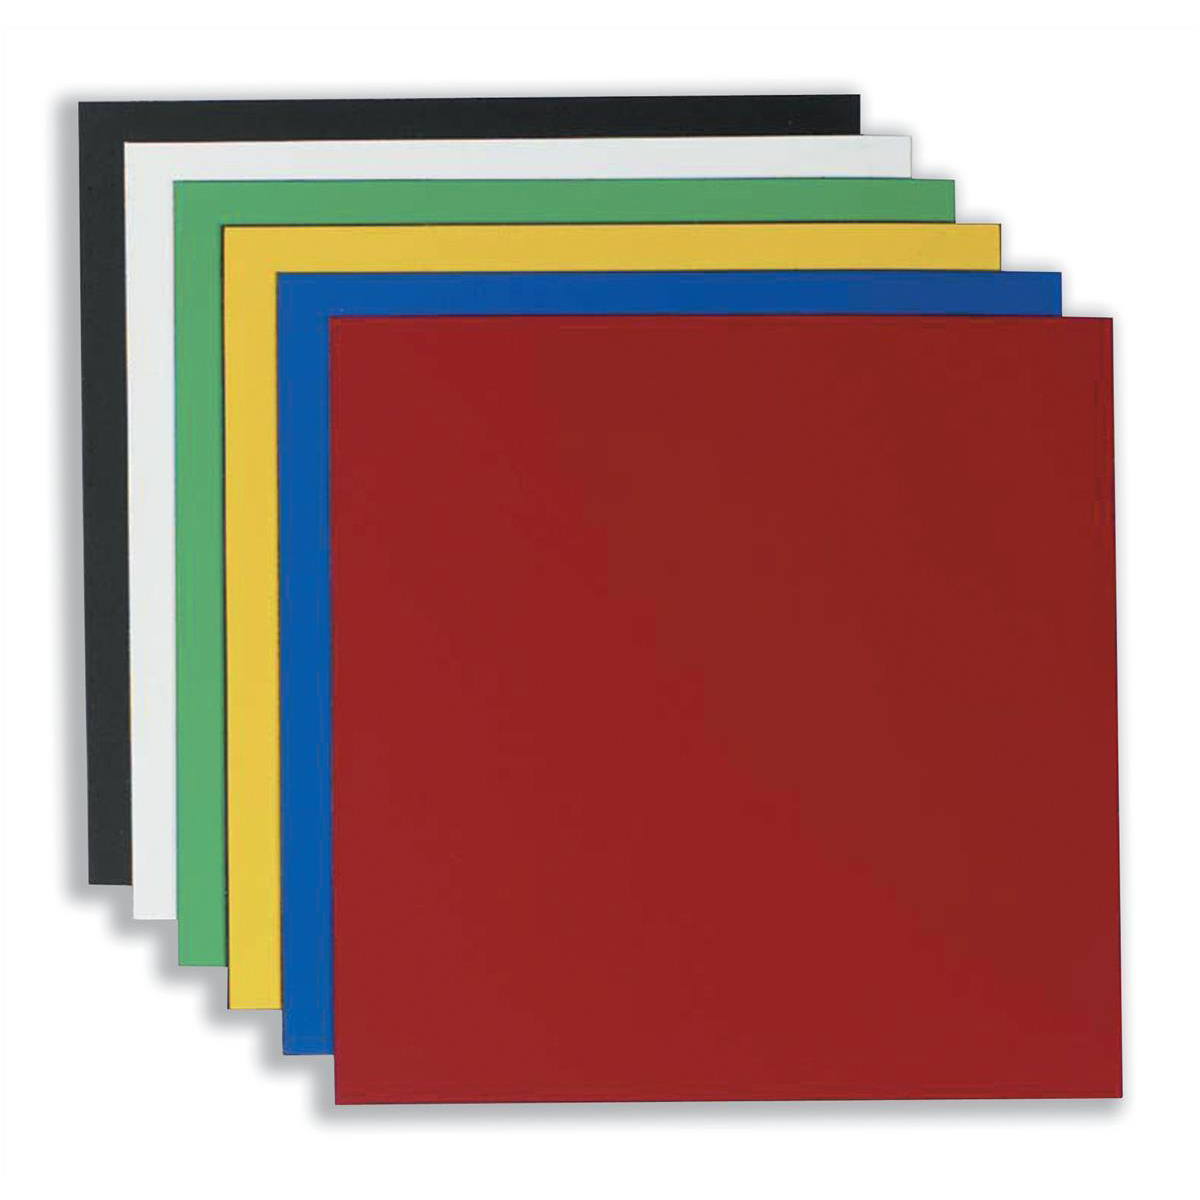 Nobo Magnetic Squares Vinyl 150x150mm Assorted Ref 1901104 [Pack 6]